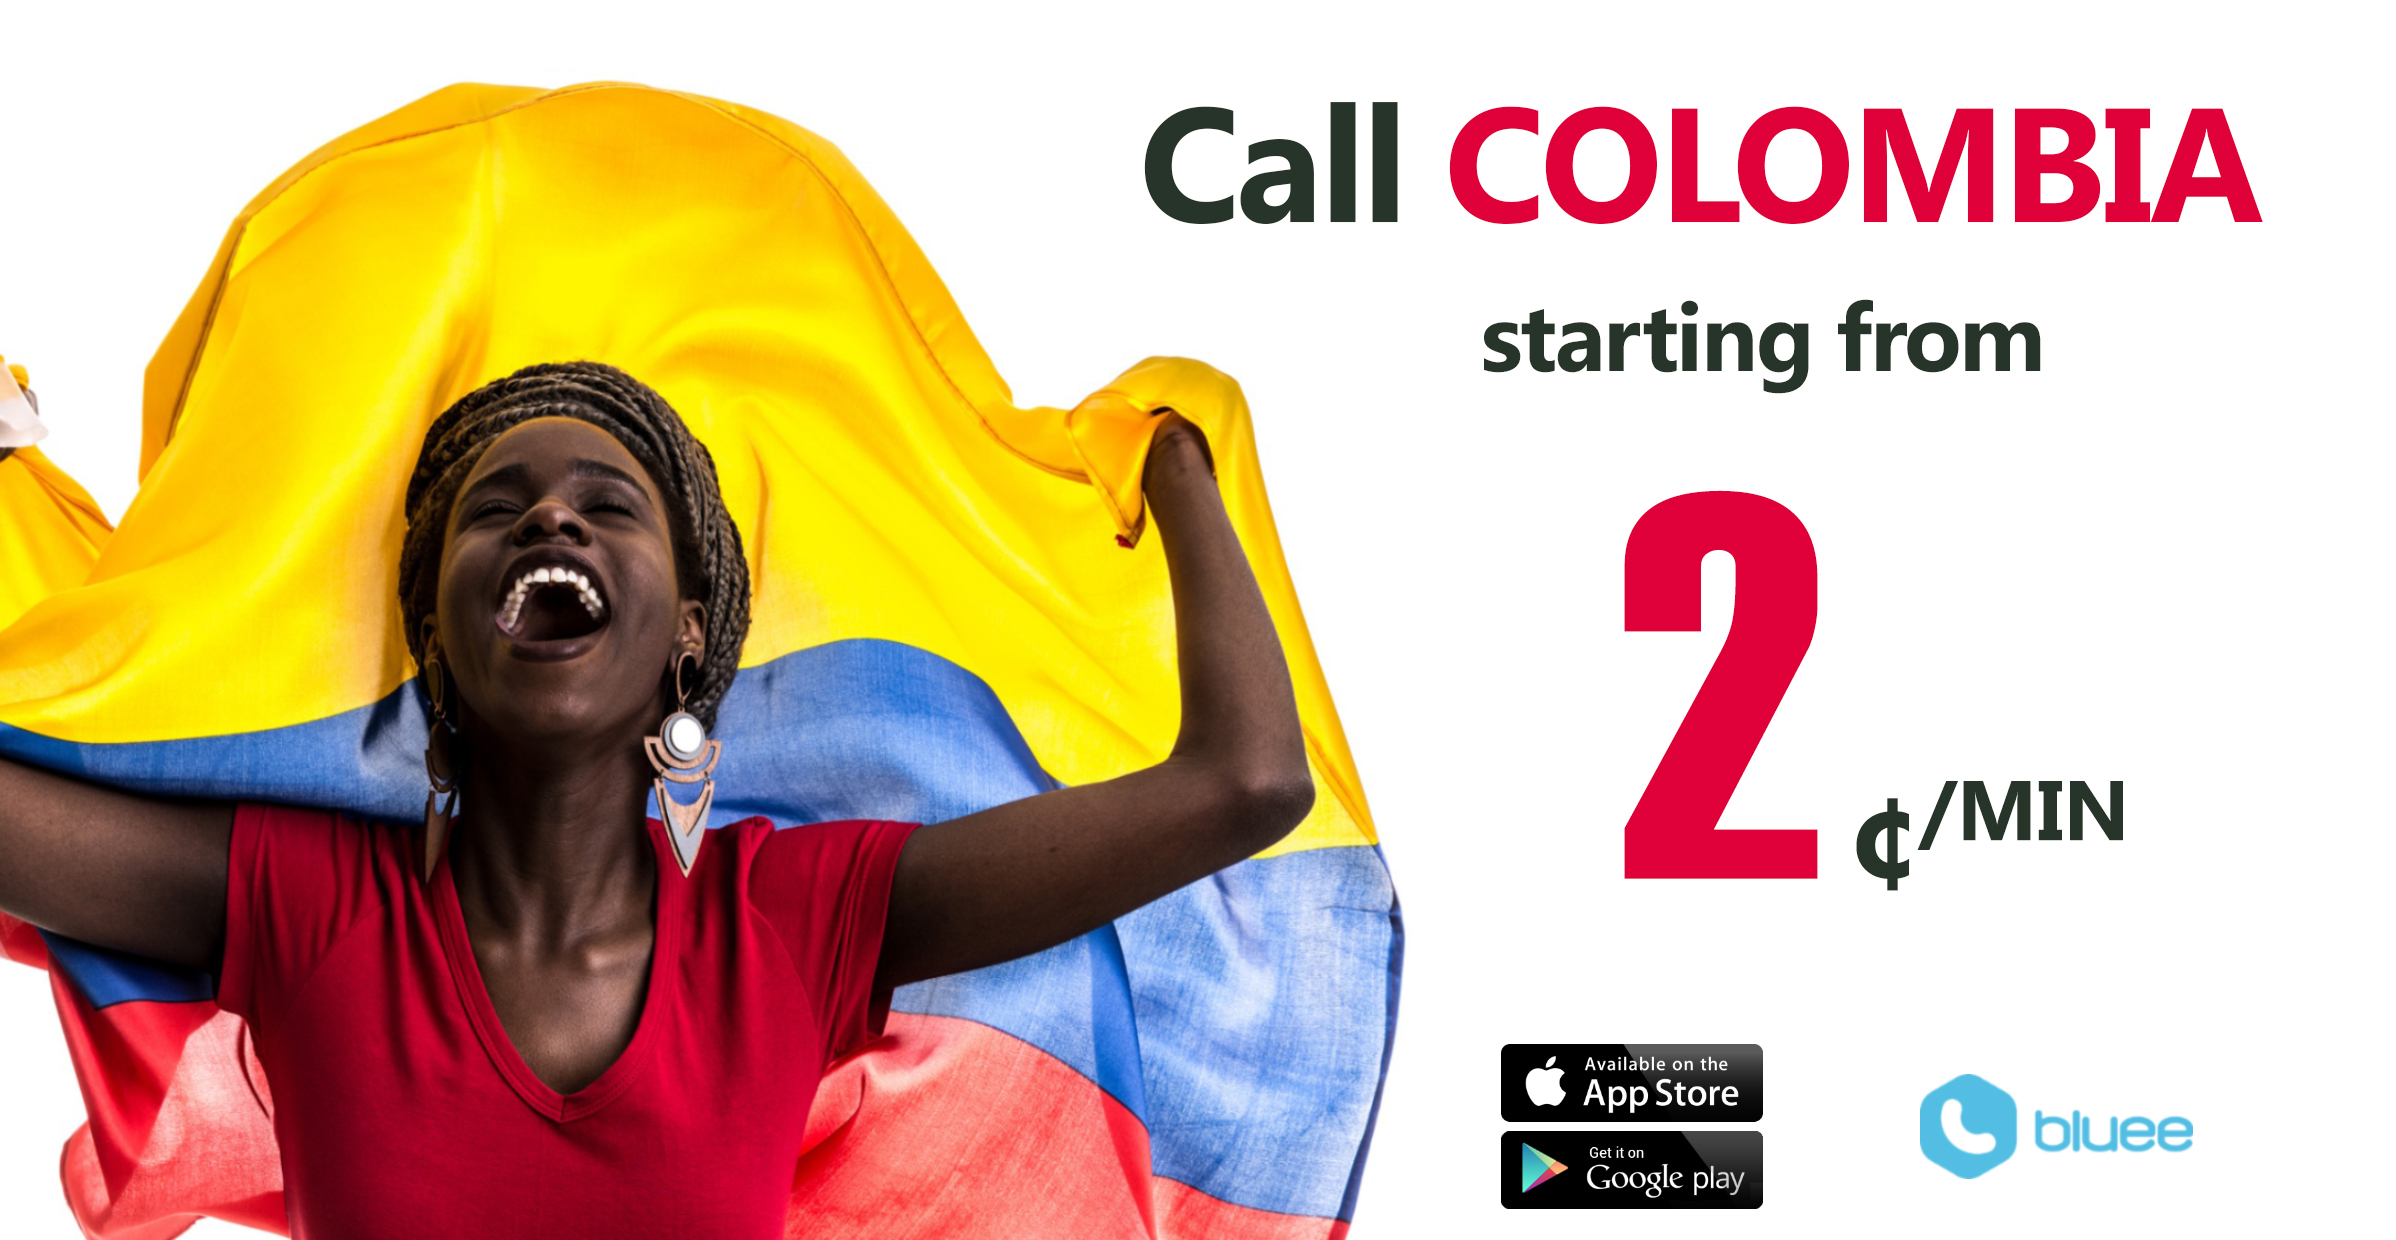 Cheap Calls to Colombia | Call Colombia From 2¢/min!